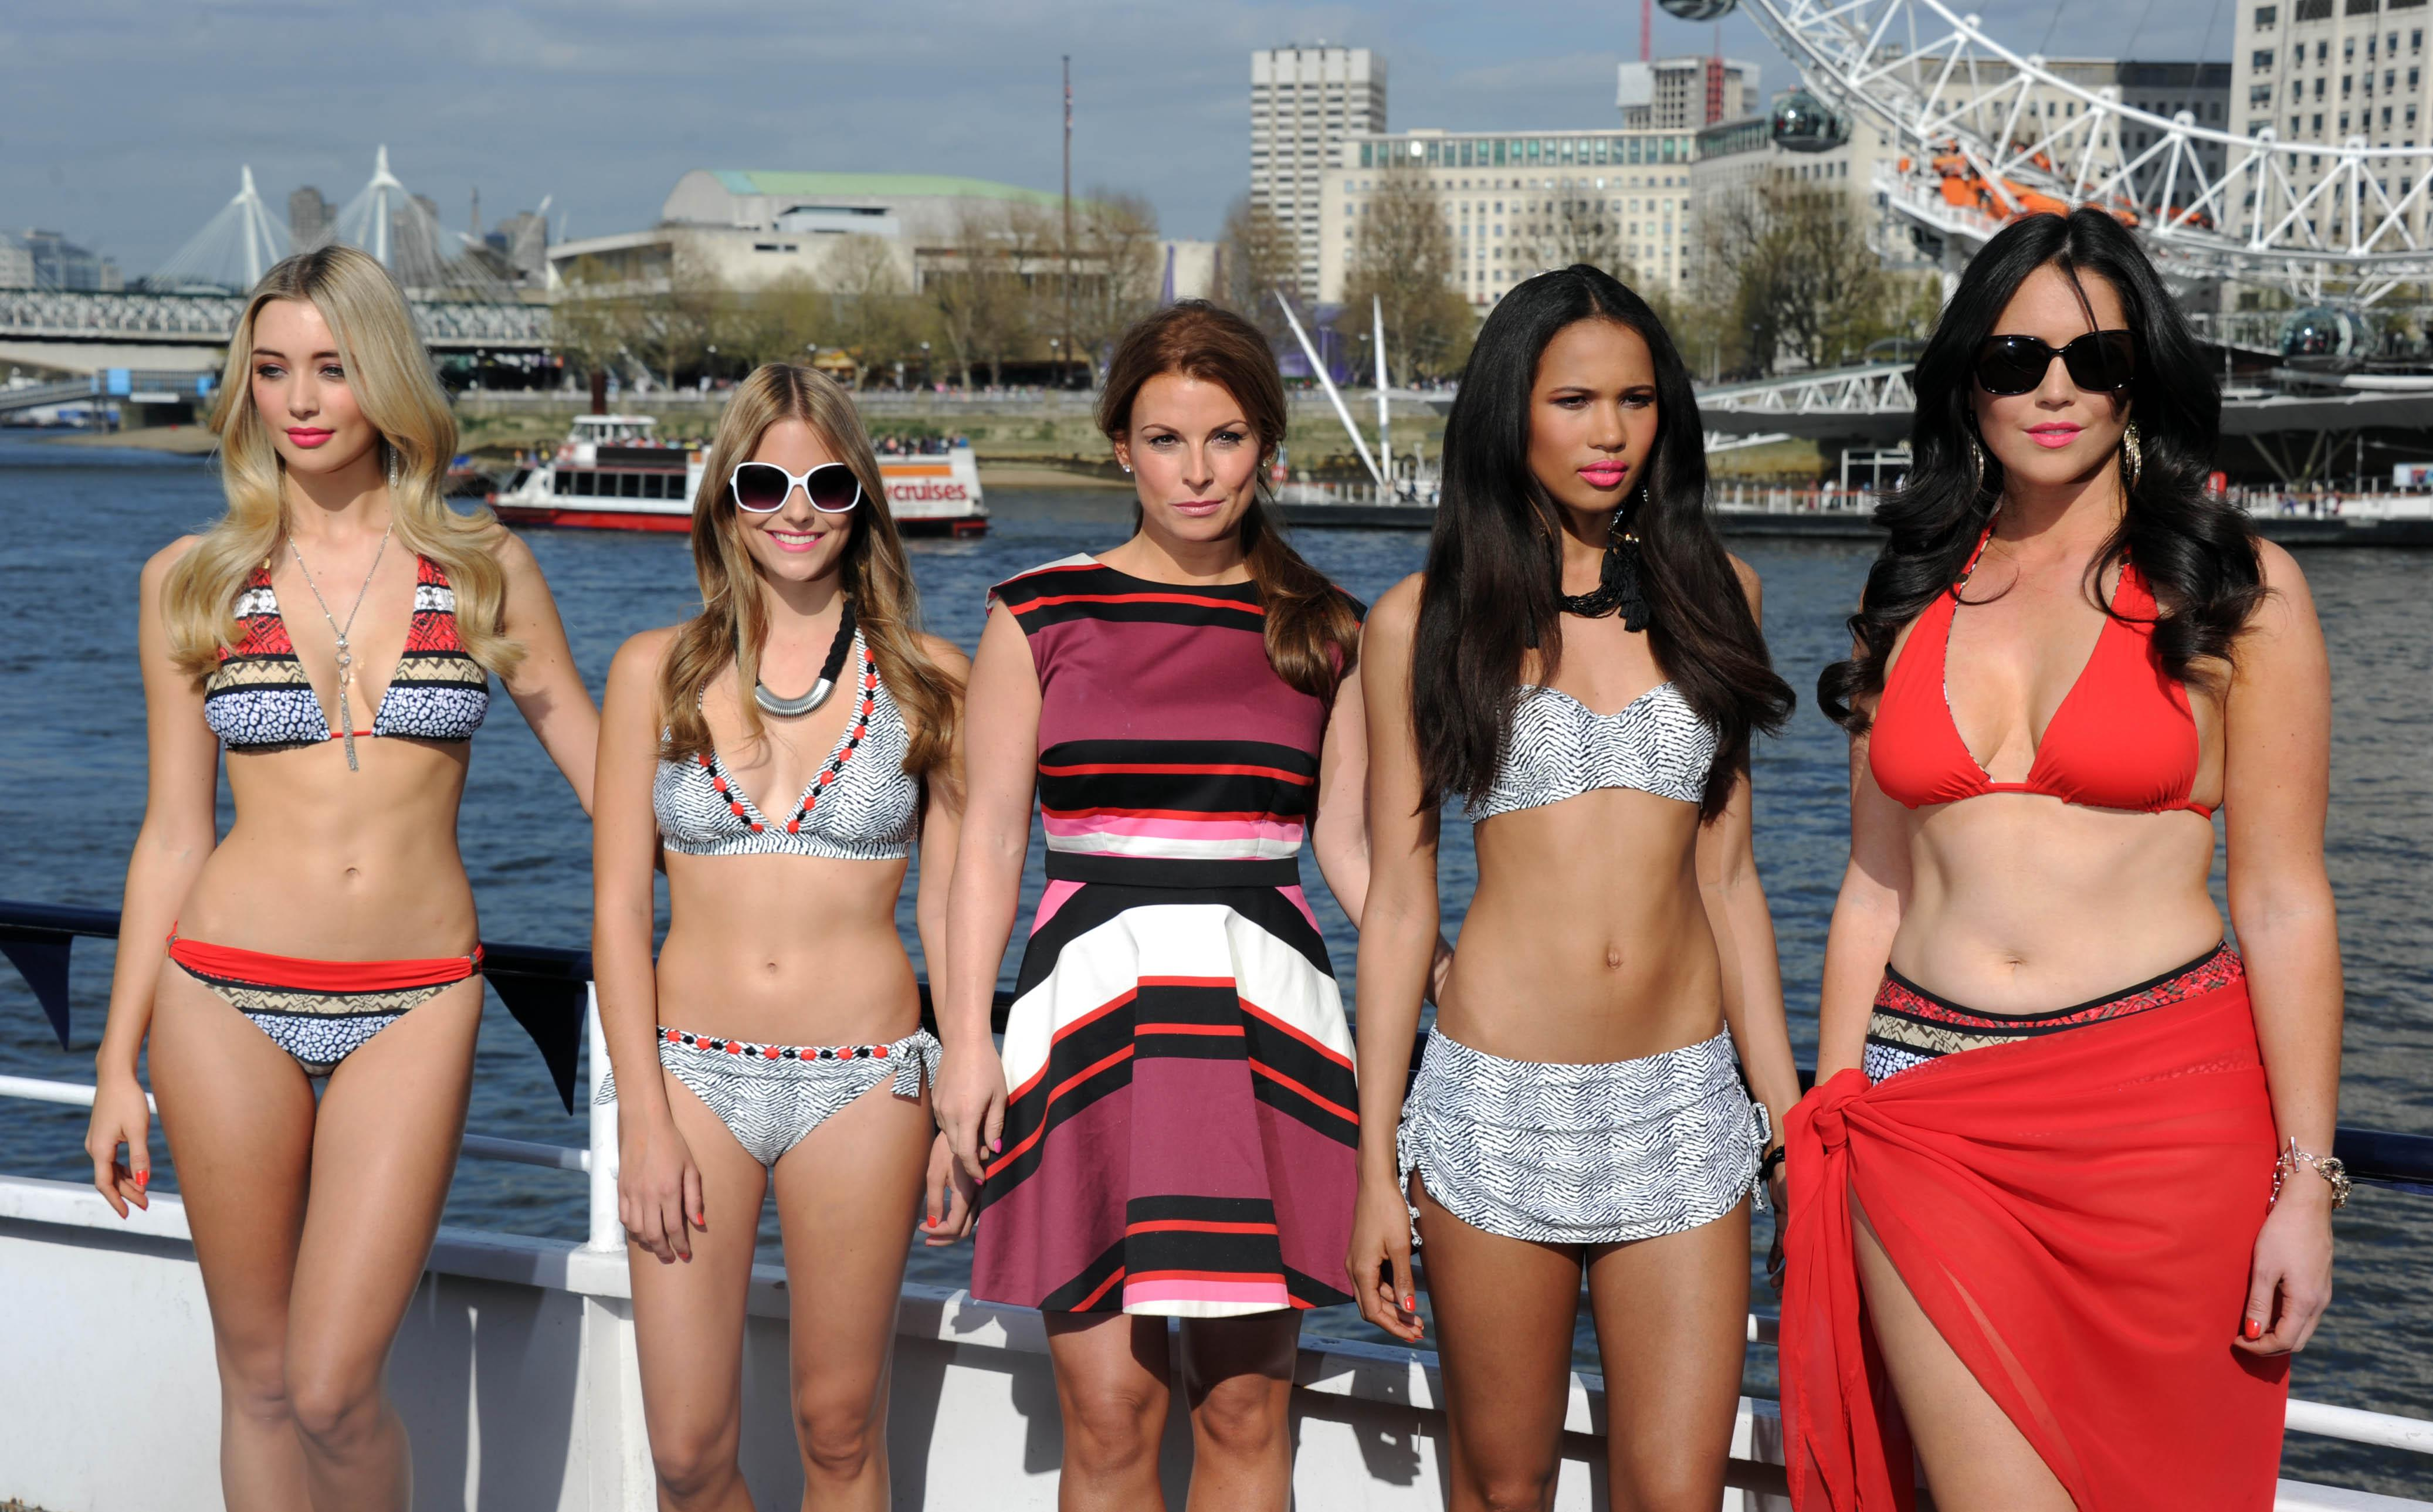 Coleen also launched her own swimwear line